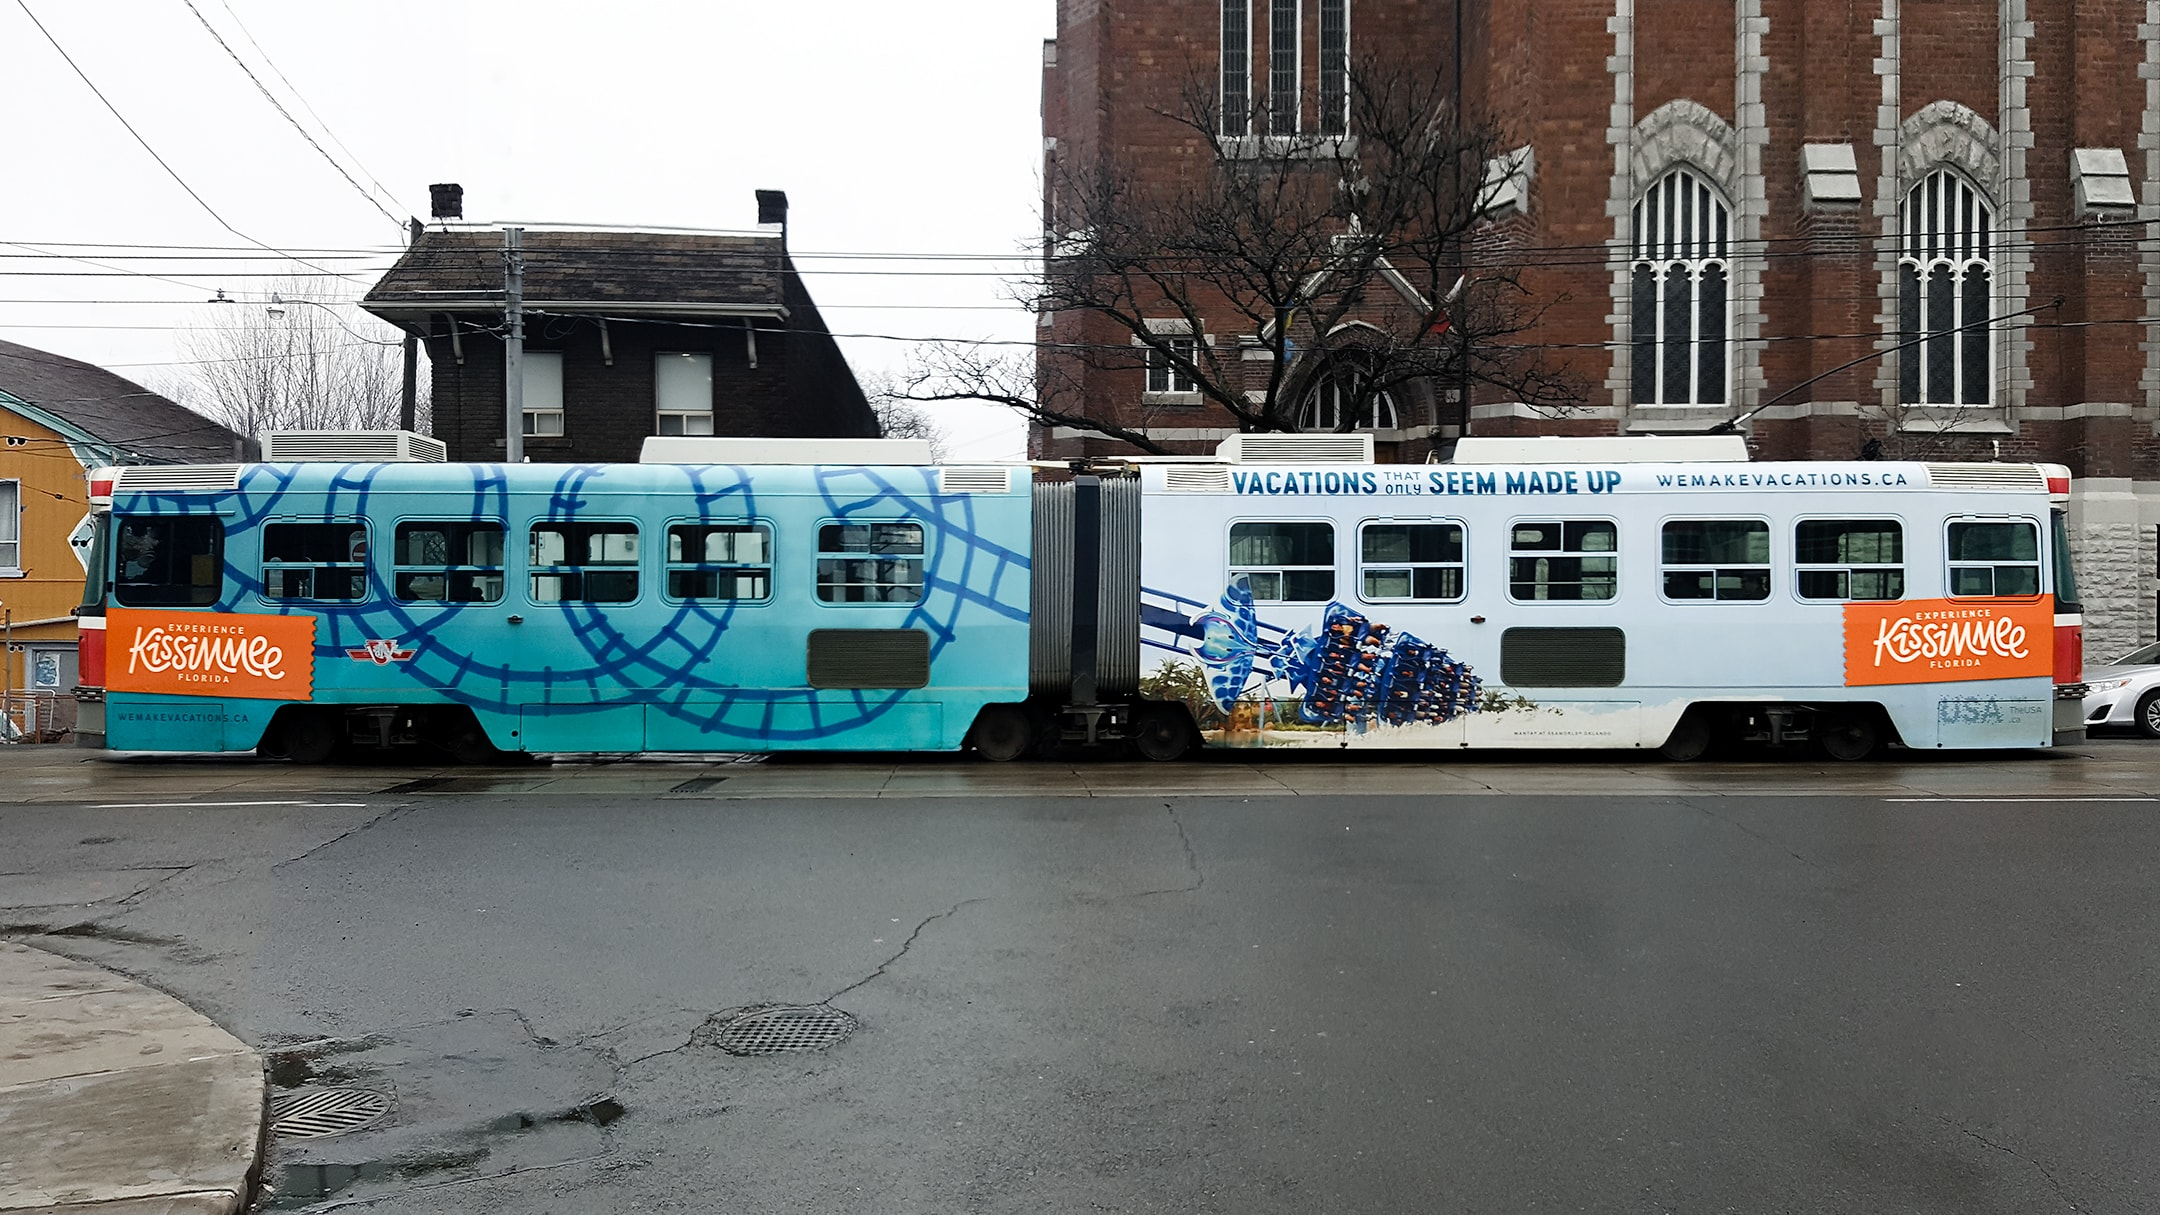 Experience Kissimmee campaign on a bus wrap - an example of the creative campaign's media planning.